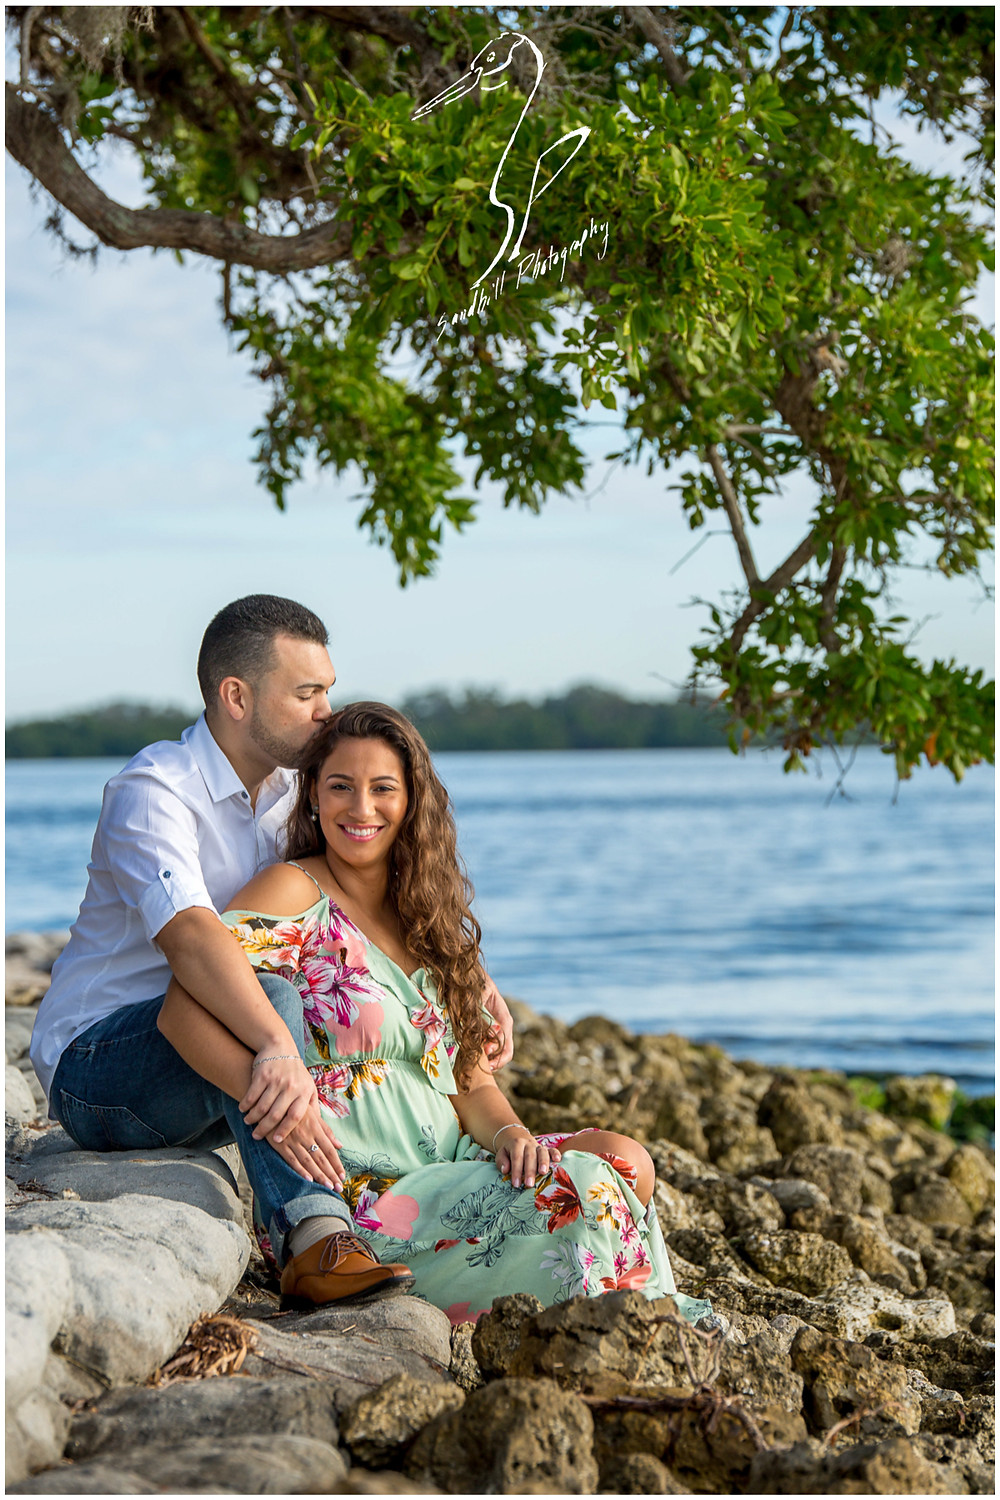 DeSoto National Memorial Photography, an engaged couple sit romantically on the rocks under a tree and the man kisses his fiance's head.